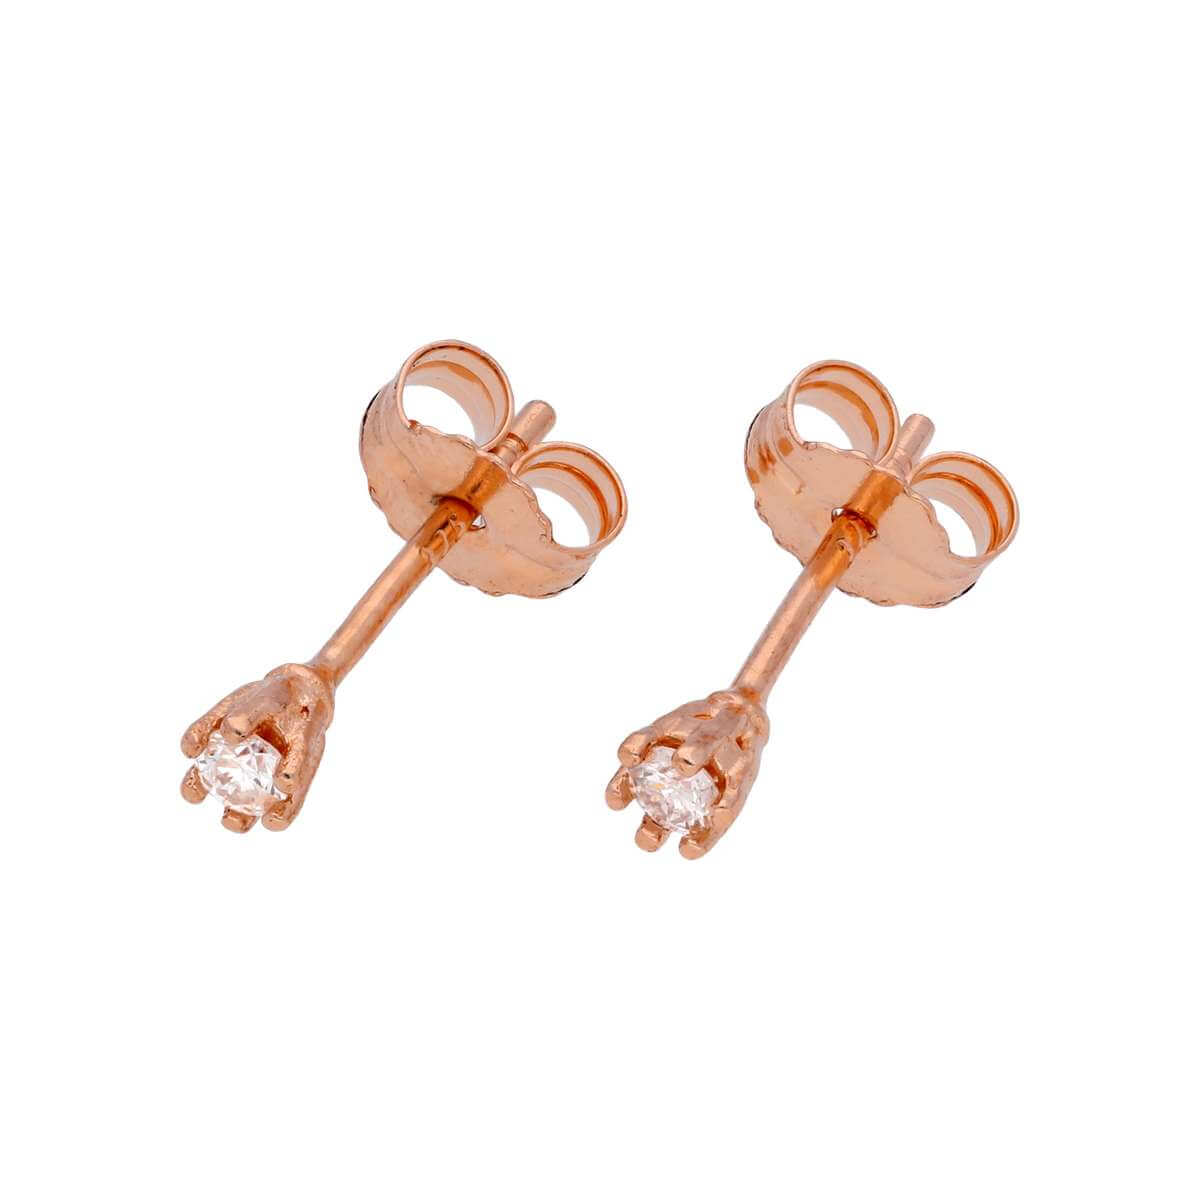 0.05ct Diamond 9ct Rose Gold 6 Prong Claw Set Stud Earrings